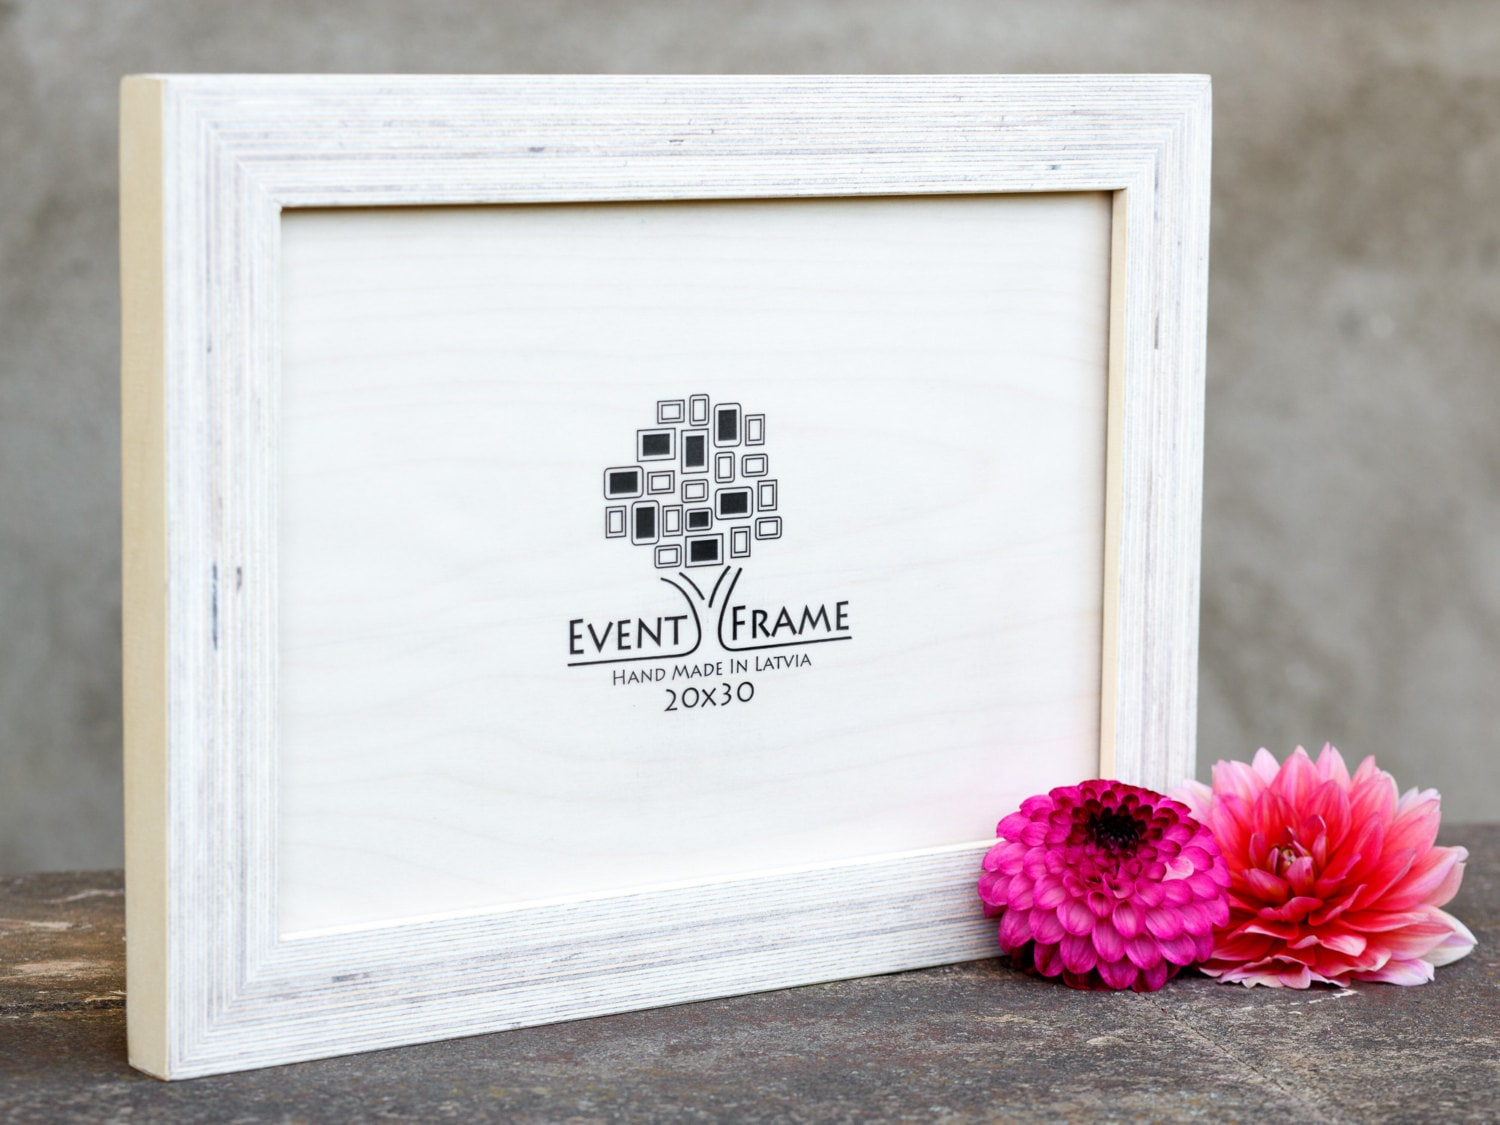 8x12 Picture frame, 20x30 cm Unique Wooden Rustic Design, Baltic ...